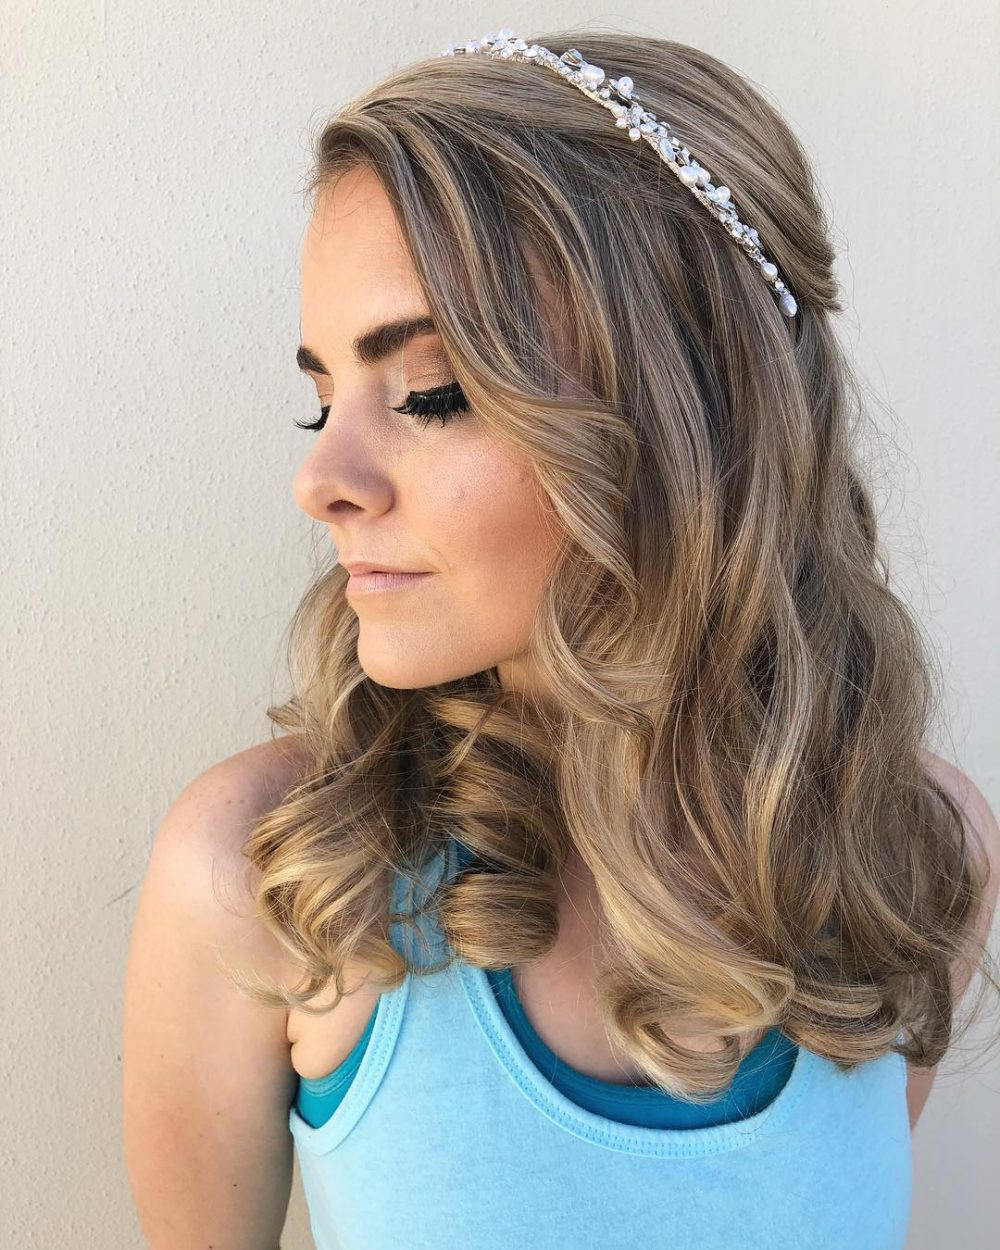 32 Cutest Prom Hairstyles for Medium Length Hair for 2021